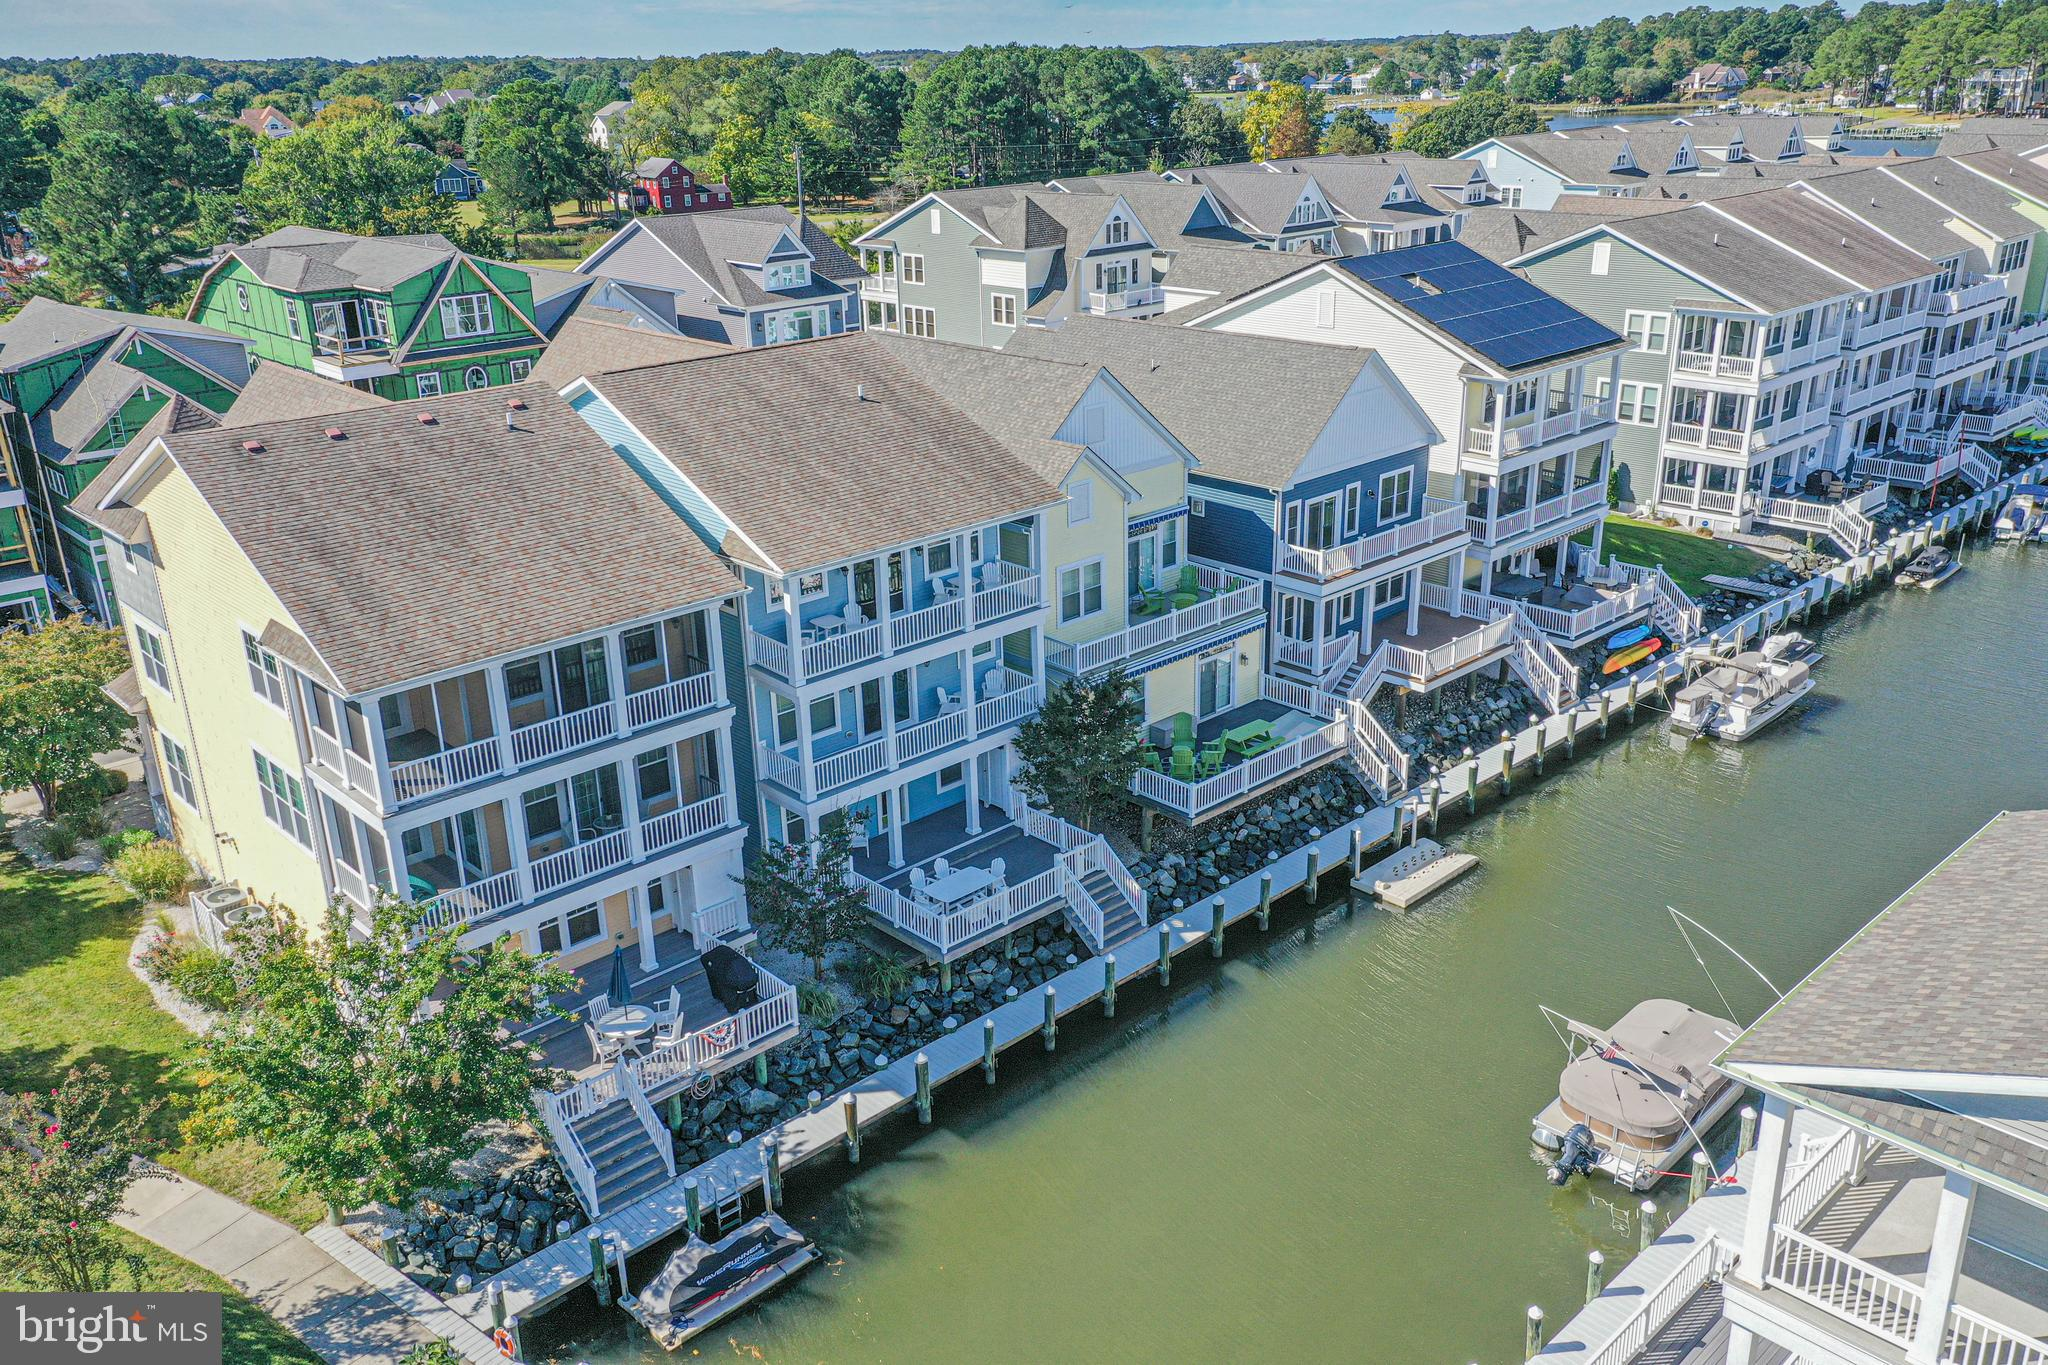 Coastal living at its best! Spectacular former model waterfront home features many fine upgrades, boat slip/dock at your back door.  All of the floors have an elevator, including the top floor with an open floor plan with kitchen, dining, two primary bedrooms, and a covered porch. The second floor has three additional bedrooms, including the 2nd primary bedroom. The first floor has a large recreation room (easy to convert to a 5th bedroom), laundry room, full bath, and a covered porch with a shower overlooking the water. All of the decks were replaced with DecTech in 2020. Sunset Harbour offers a maintenance-free community with a pool, clubhouse, boat ramp, and only minutes to the beach. Easy access to the Indian River Bay and the Ocean.  Home is being sold just as you see it with everything included, no exclusions. Just unpack your bags.